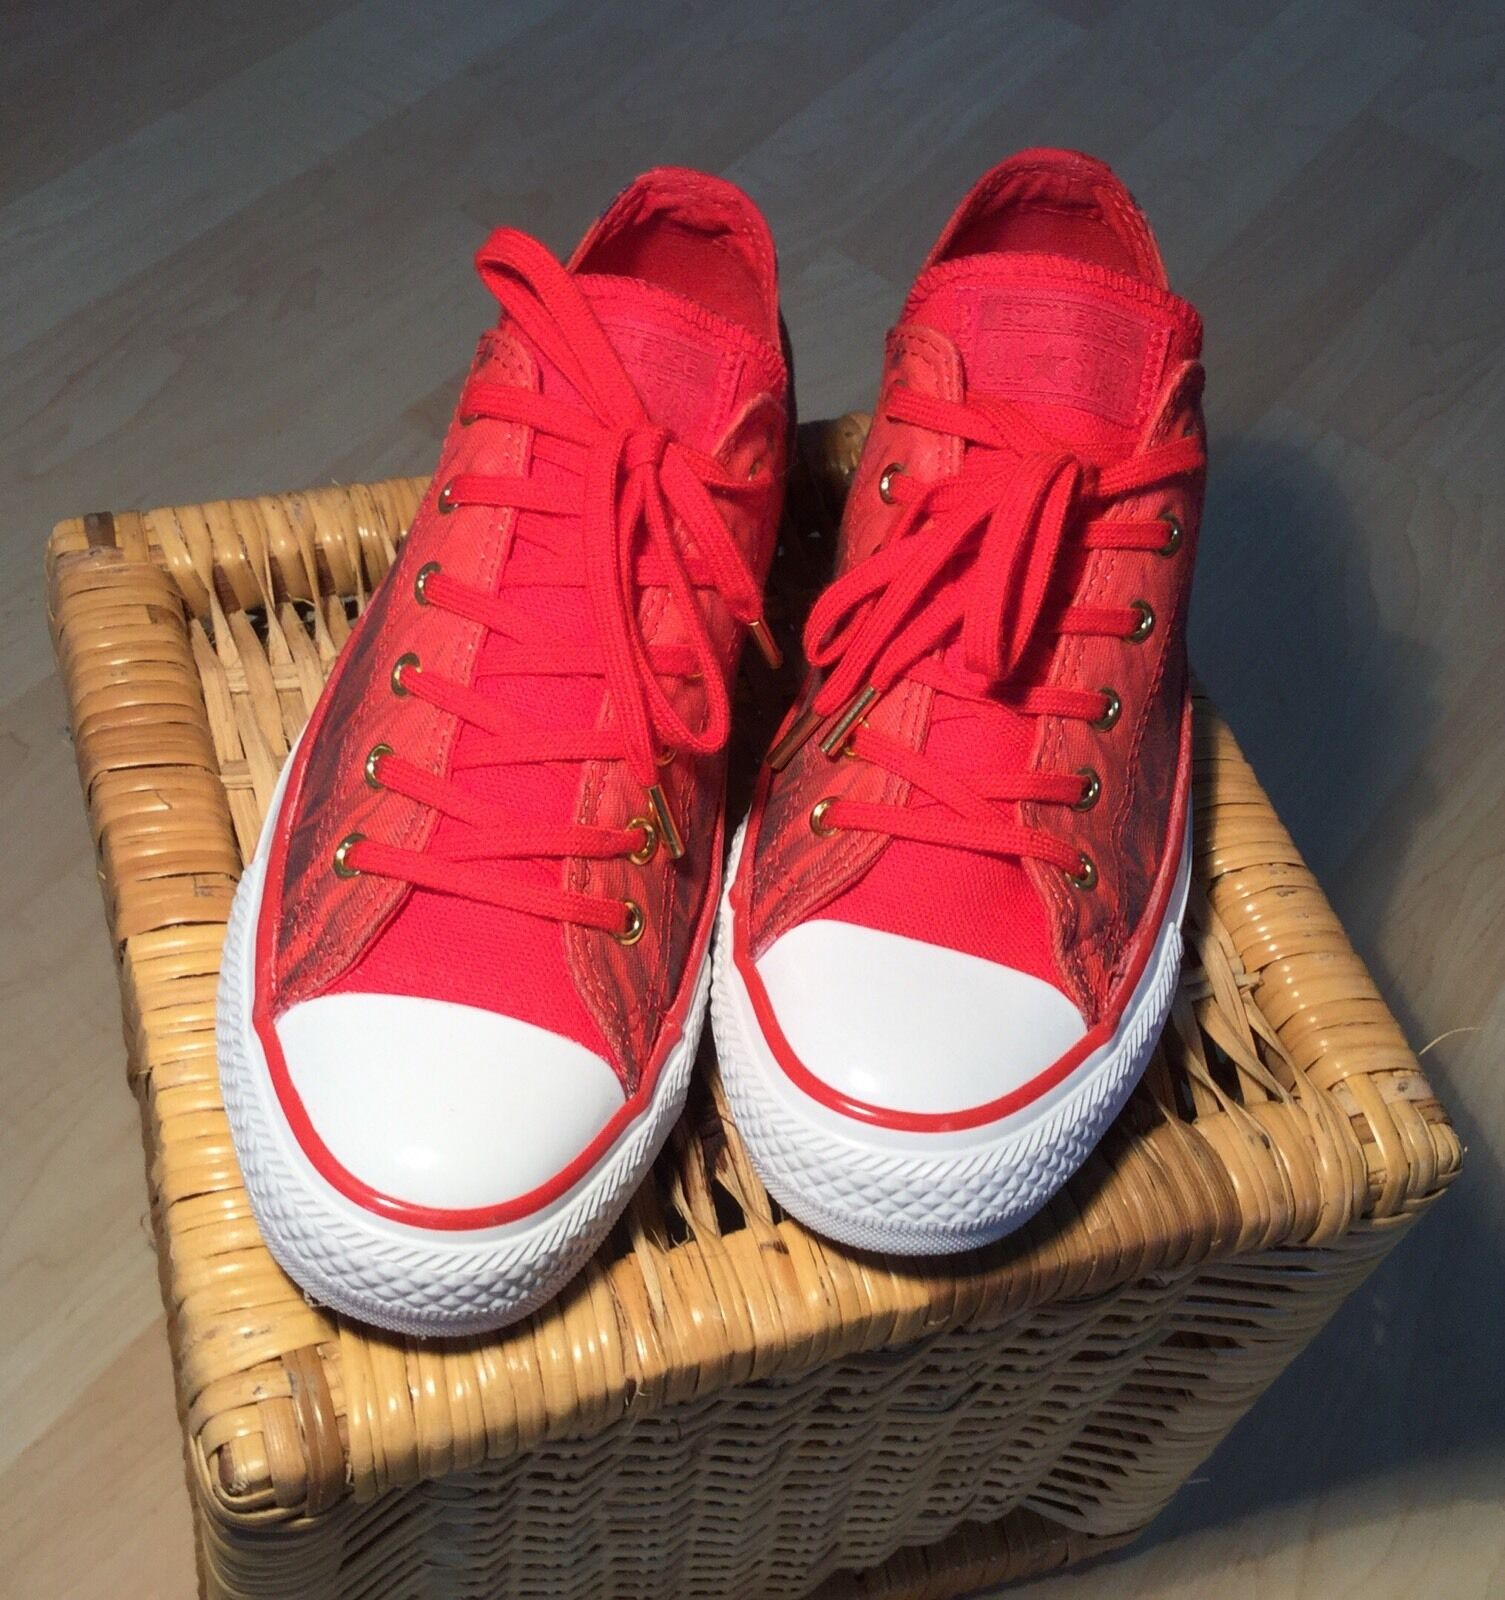 Sneaker Chucks Converse All Star 4,5) 4,5) Gr. 37 (UK 4,5) 4,5) Star Rot 4efb6f